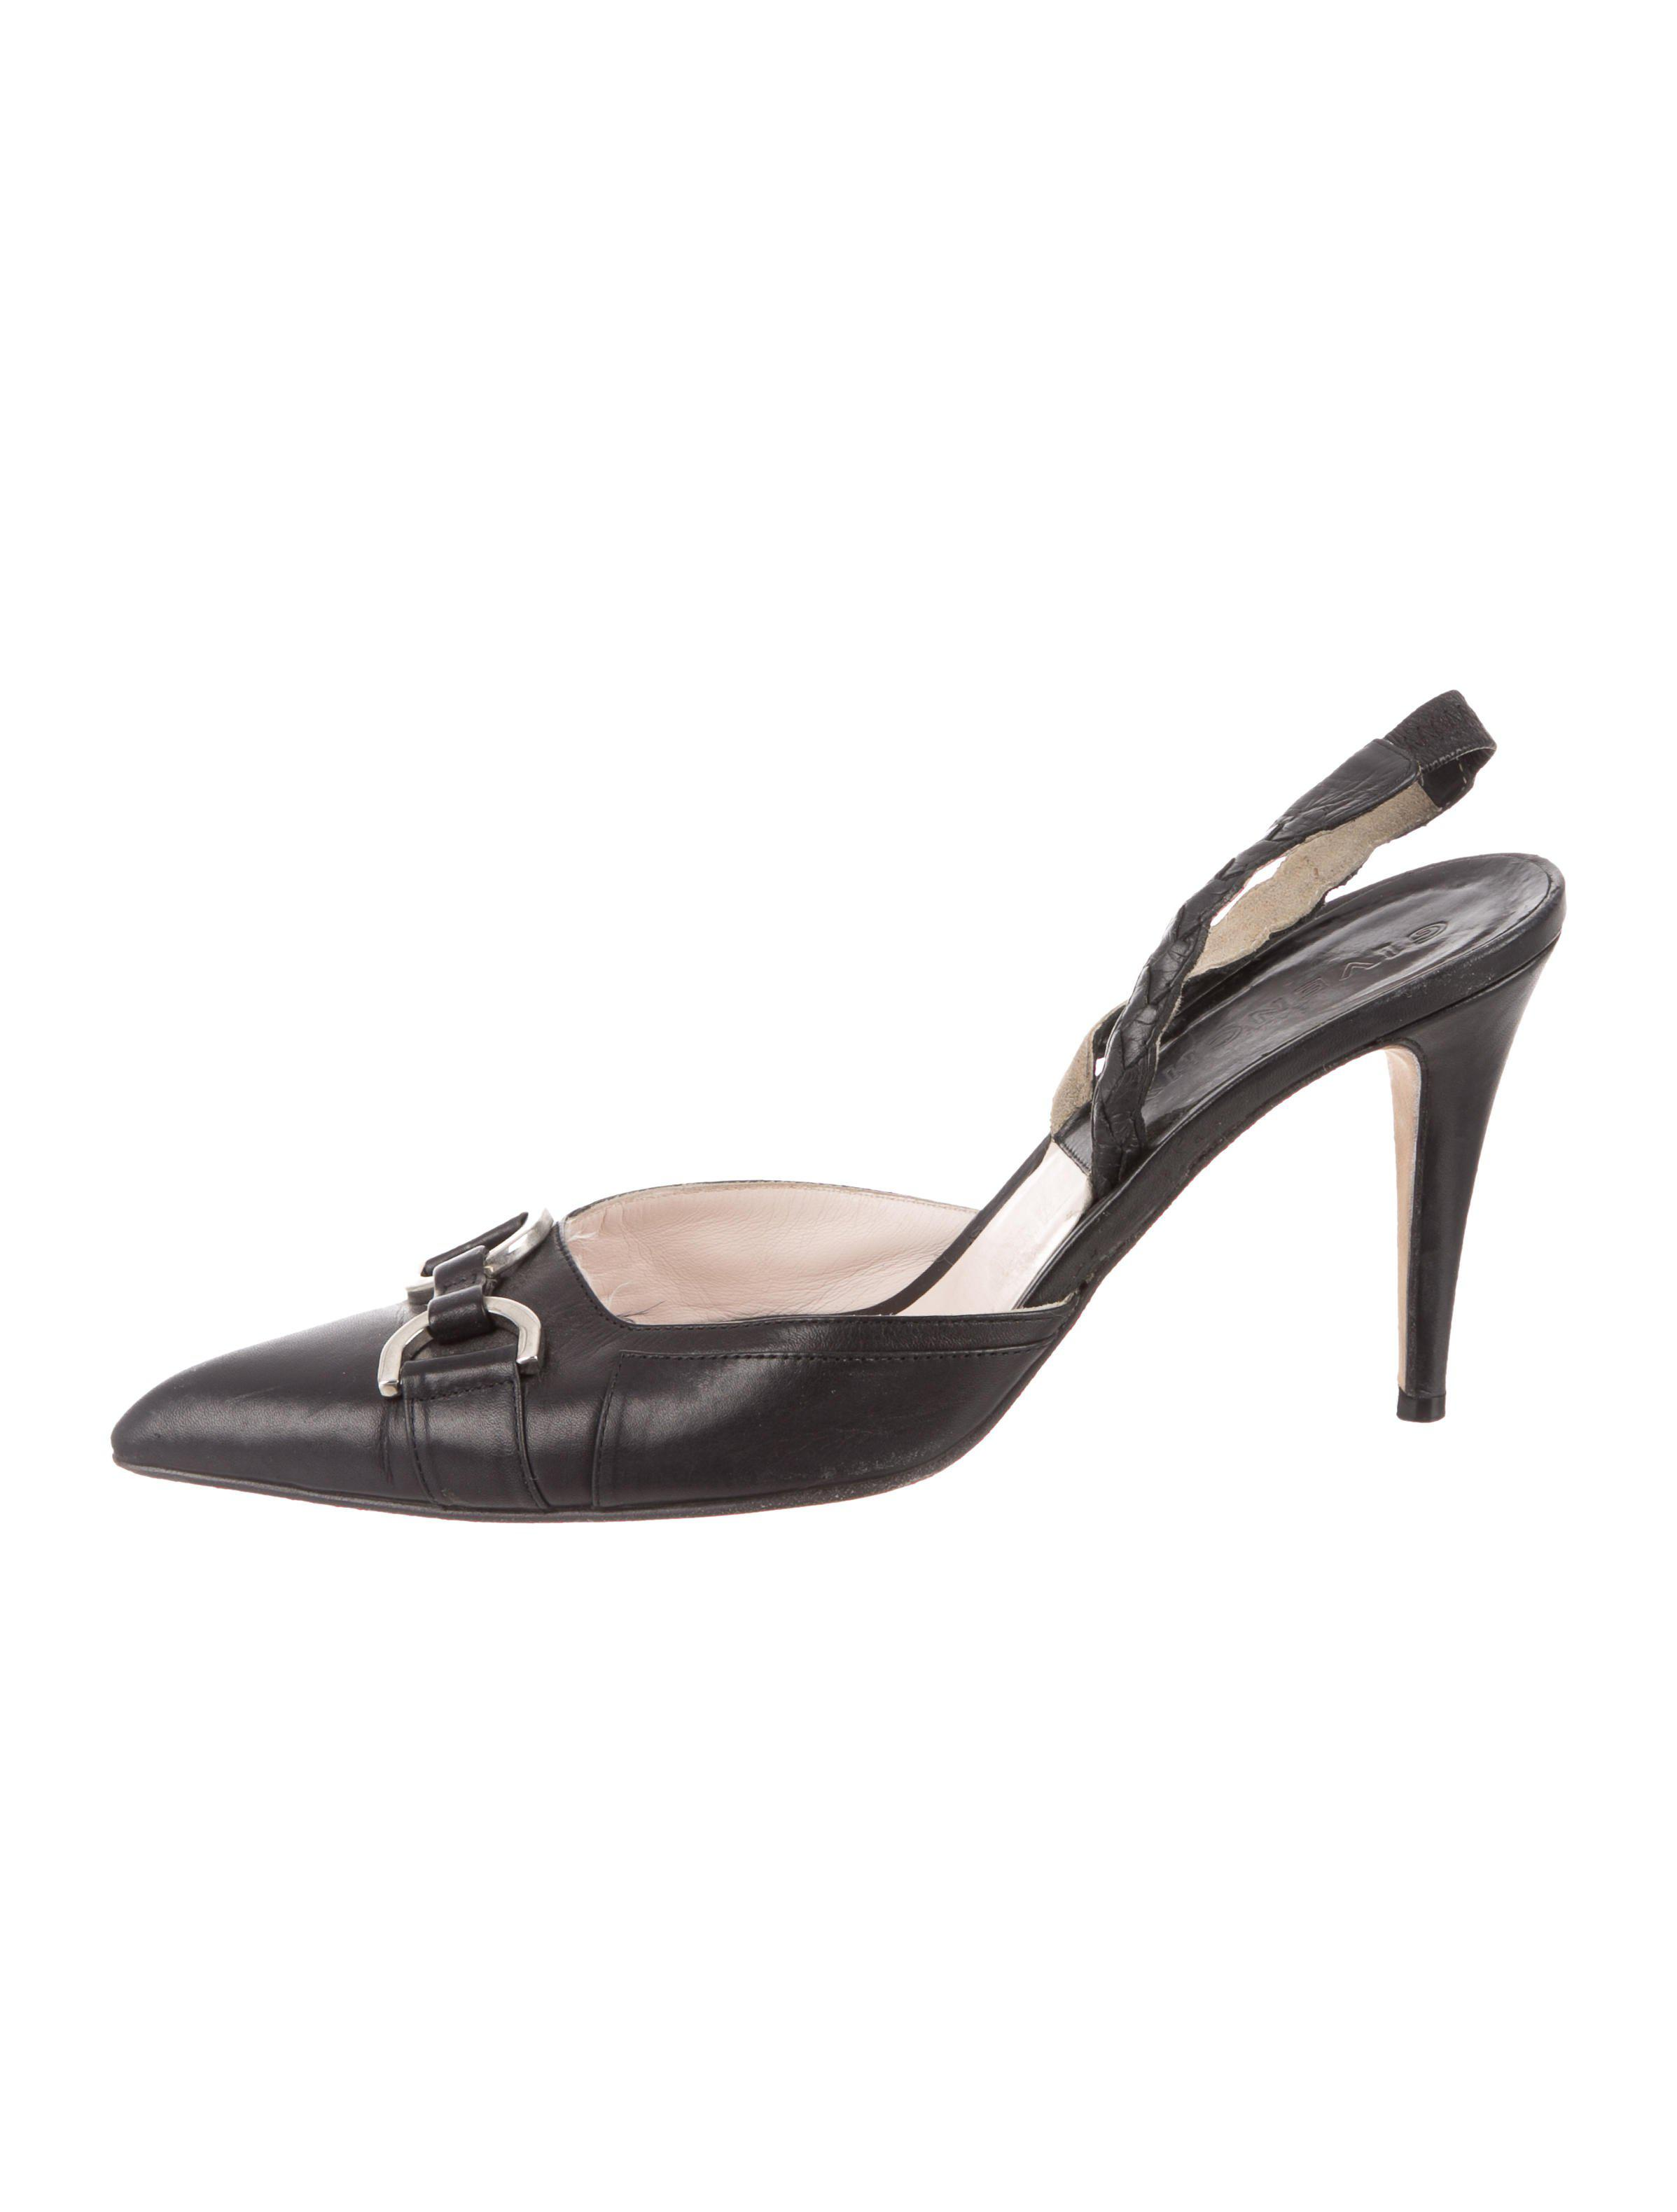 pointed toe pumps - Black Givenchy BKzgVzei